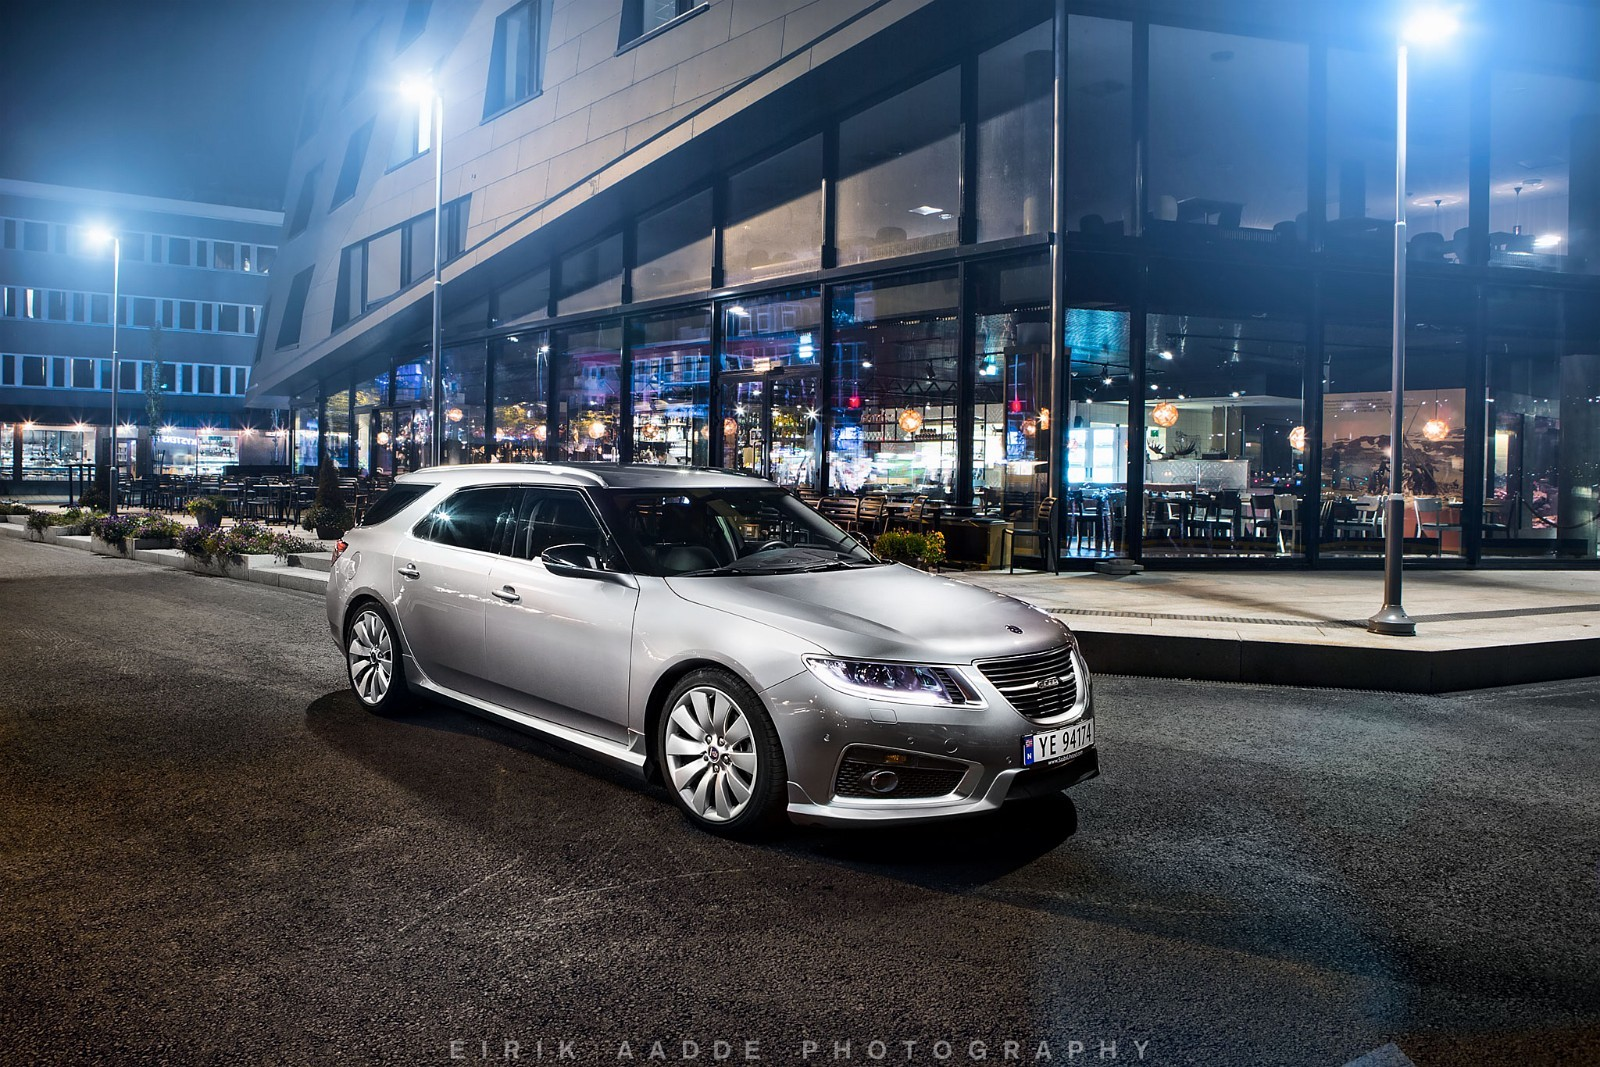 Https www saabsunited com 2017 01 best looking saab ng9 5 sportcombi ever html